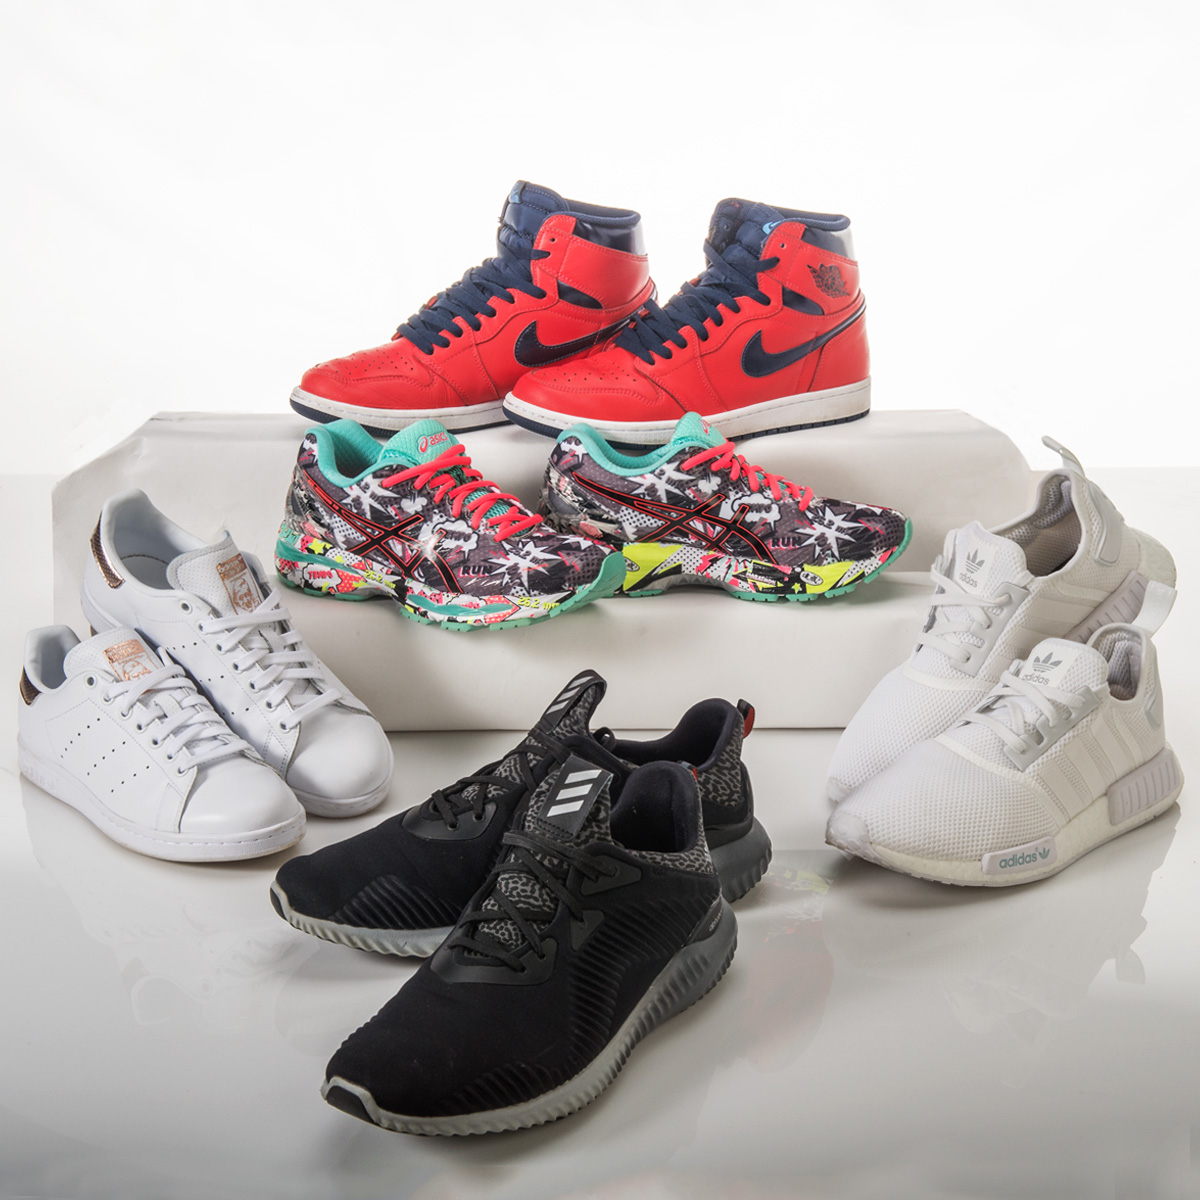 Eastbay Solemates: It's Shoe Love